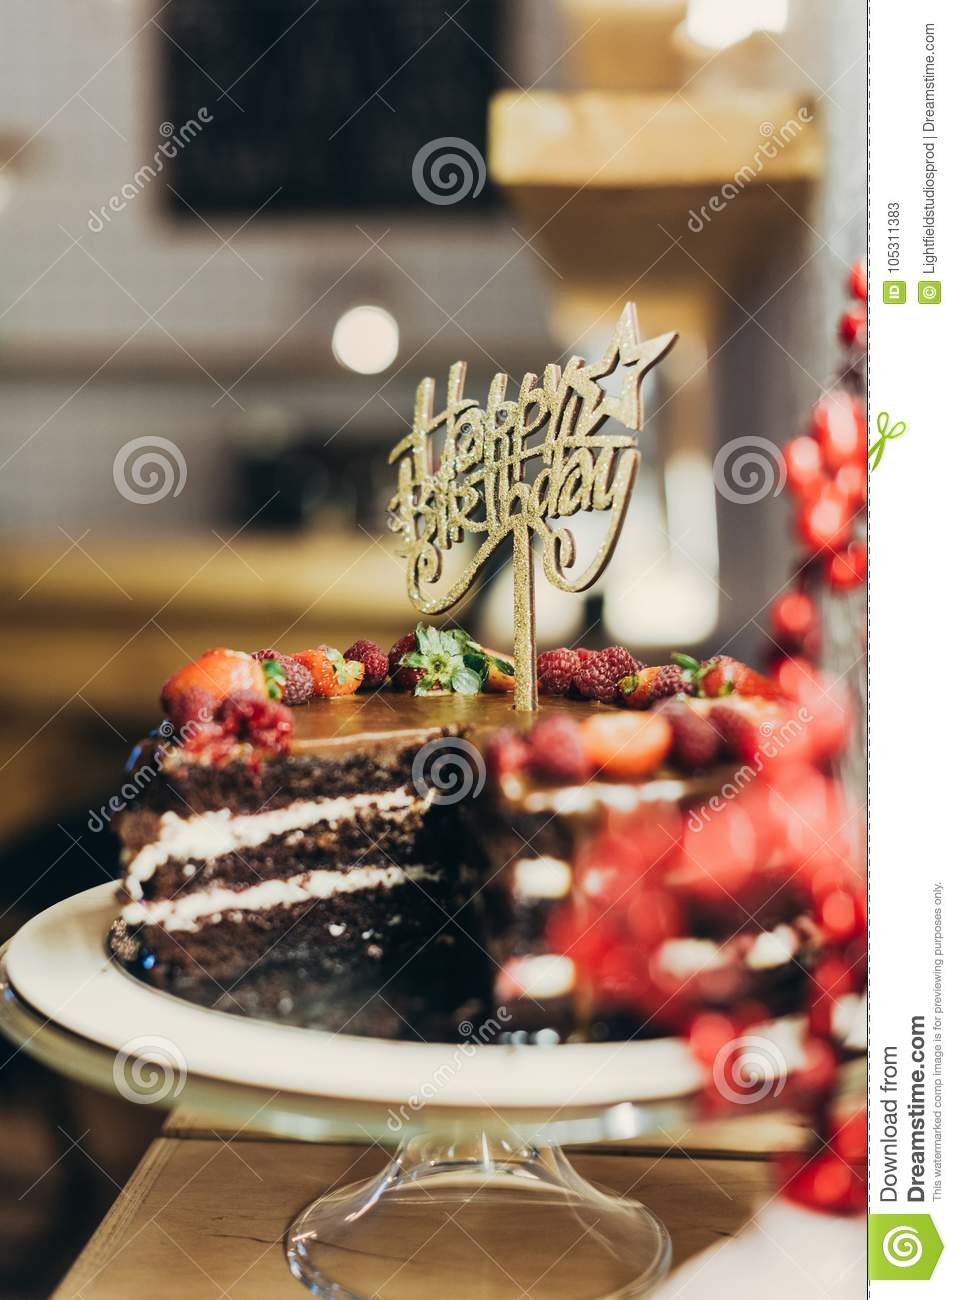 Chocolate Cake With Happy Birthday Sign On Stand